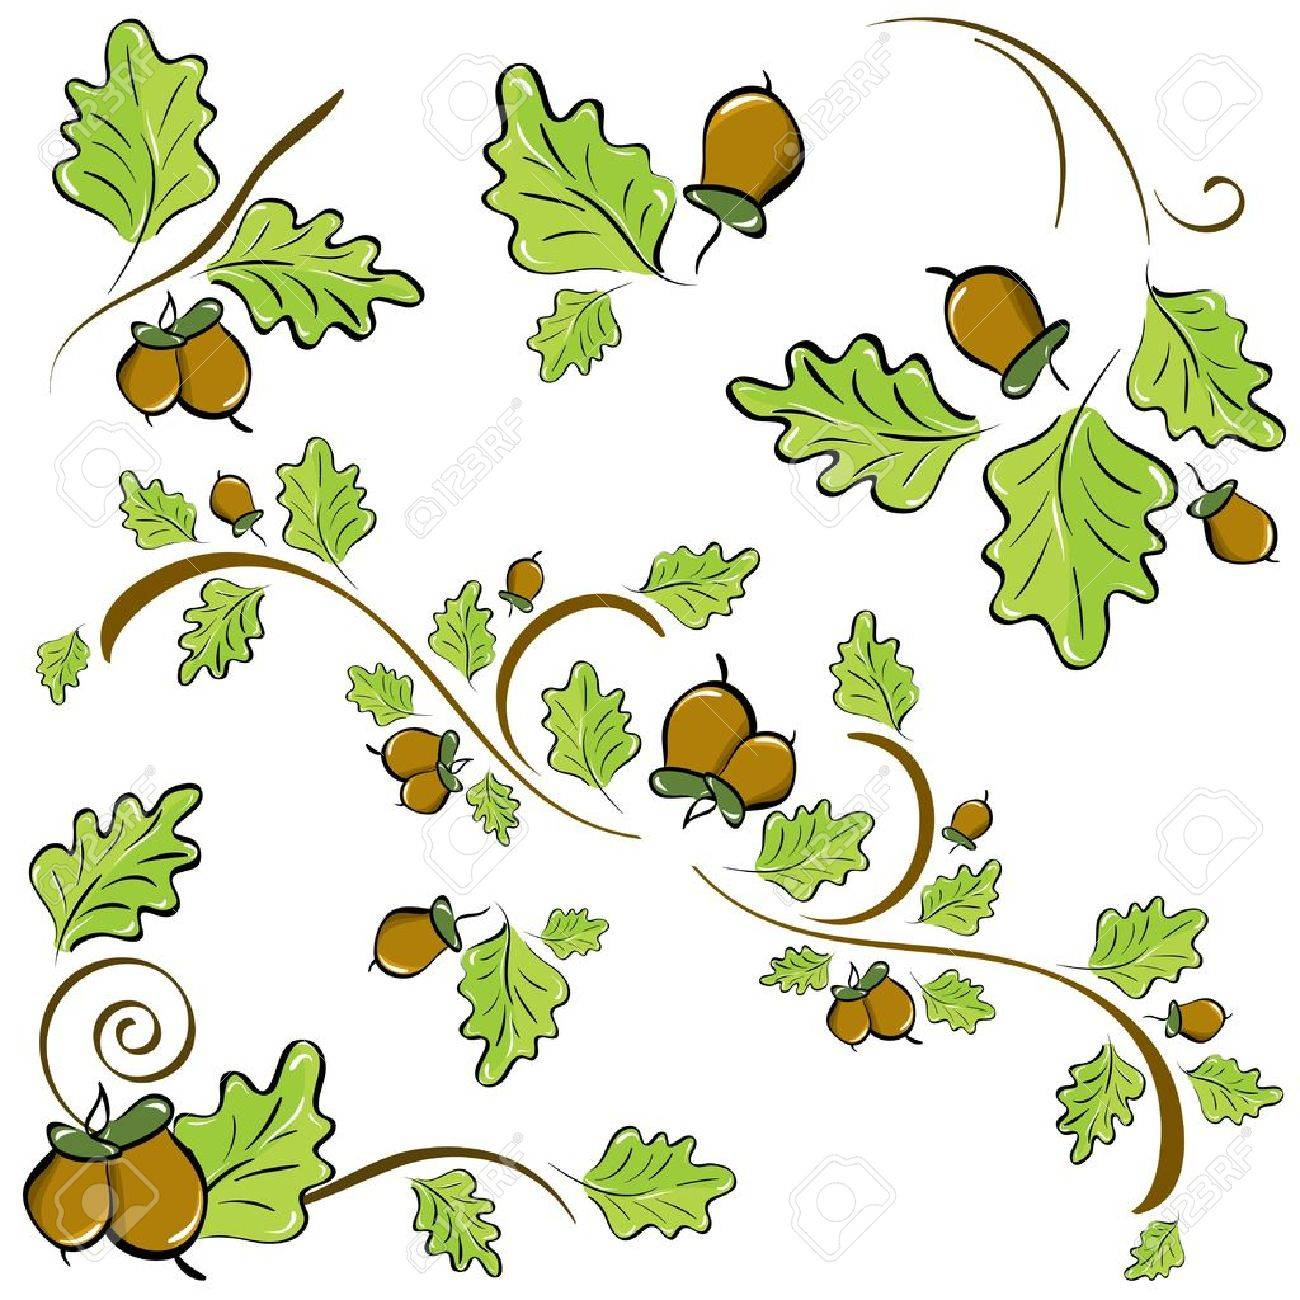 a set of ornaments made of oak leaves and acorns illustration